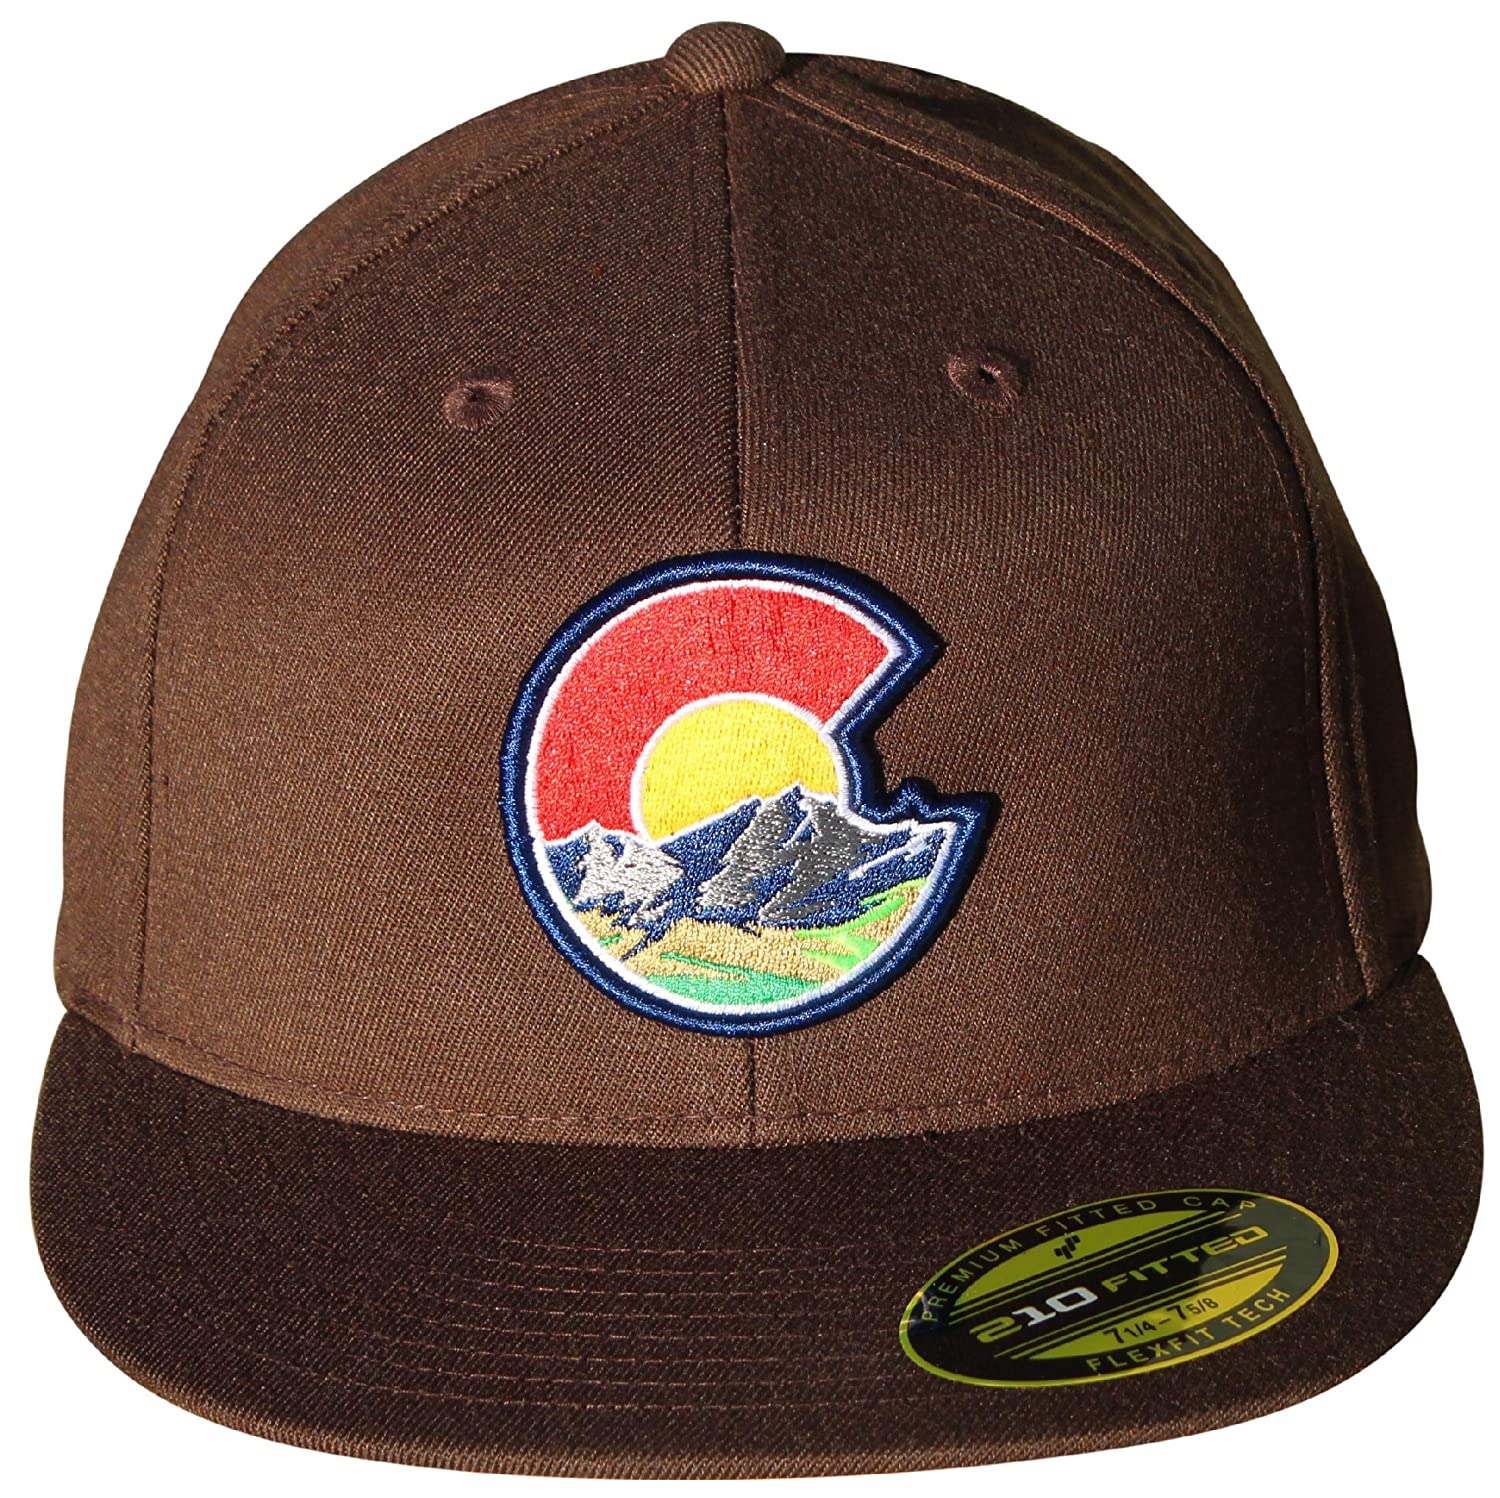 3838ad36210 Colorado C Nature 210 Fitted Flat Bill Hat. Flexfit Tech. Colorado Cap at  Amazon Men s Clothing store